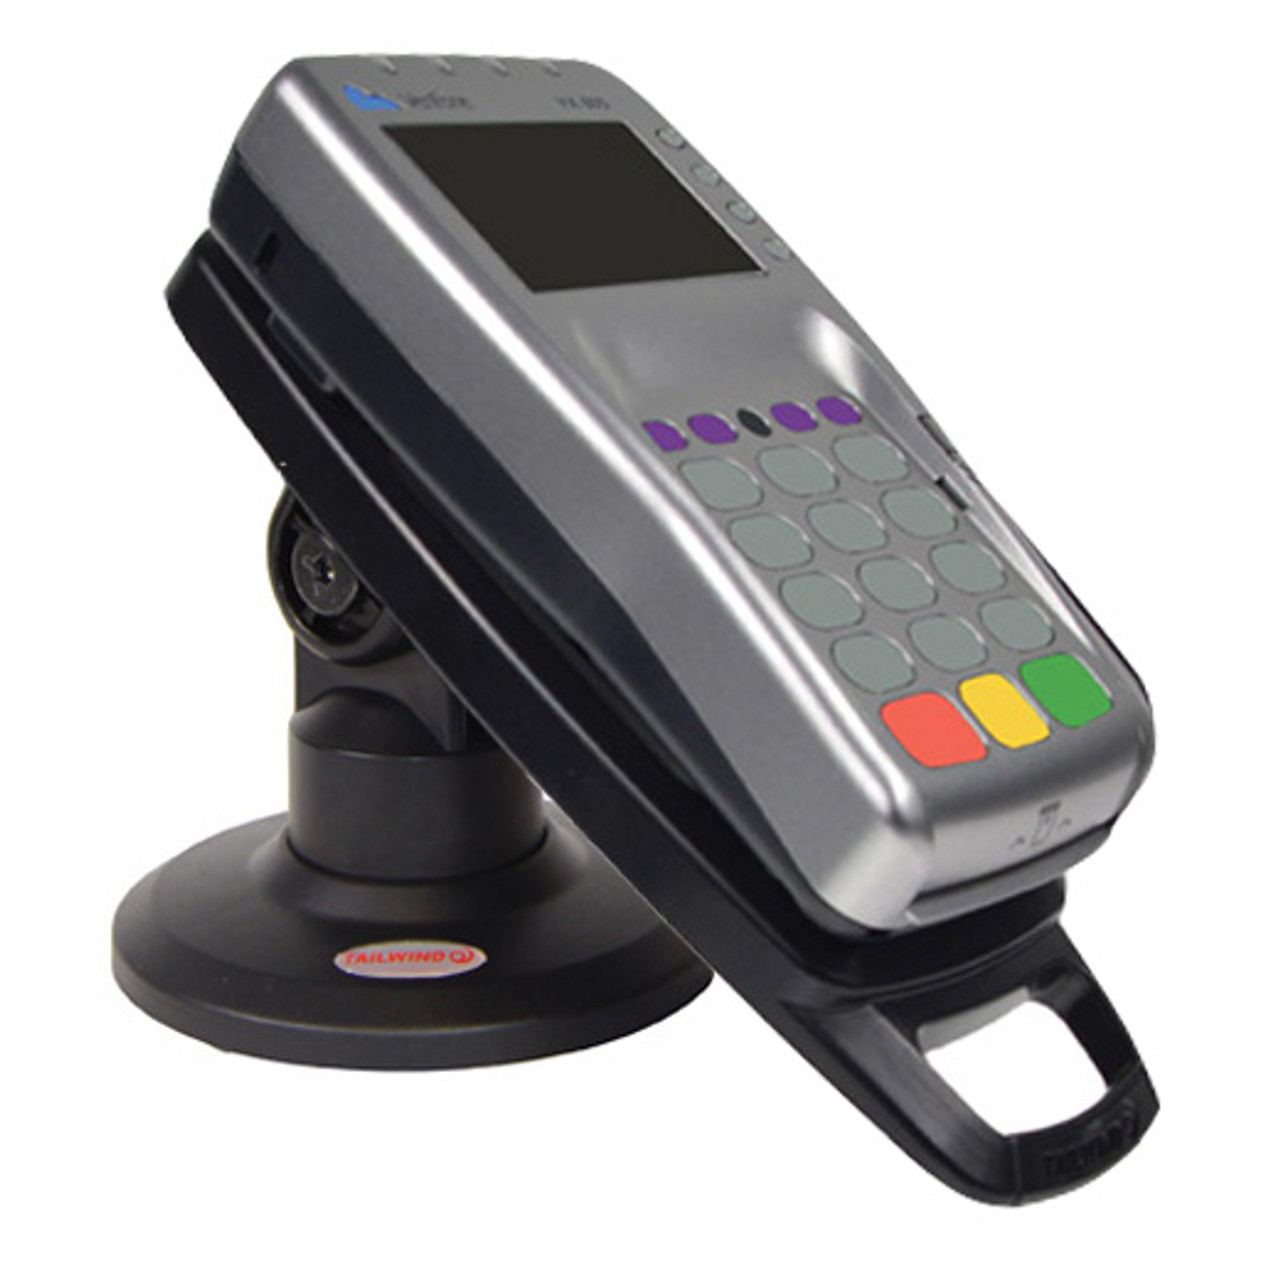 Verifone VX805 or VX820 FlexiPole FirstBase Compact Stand